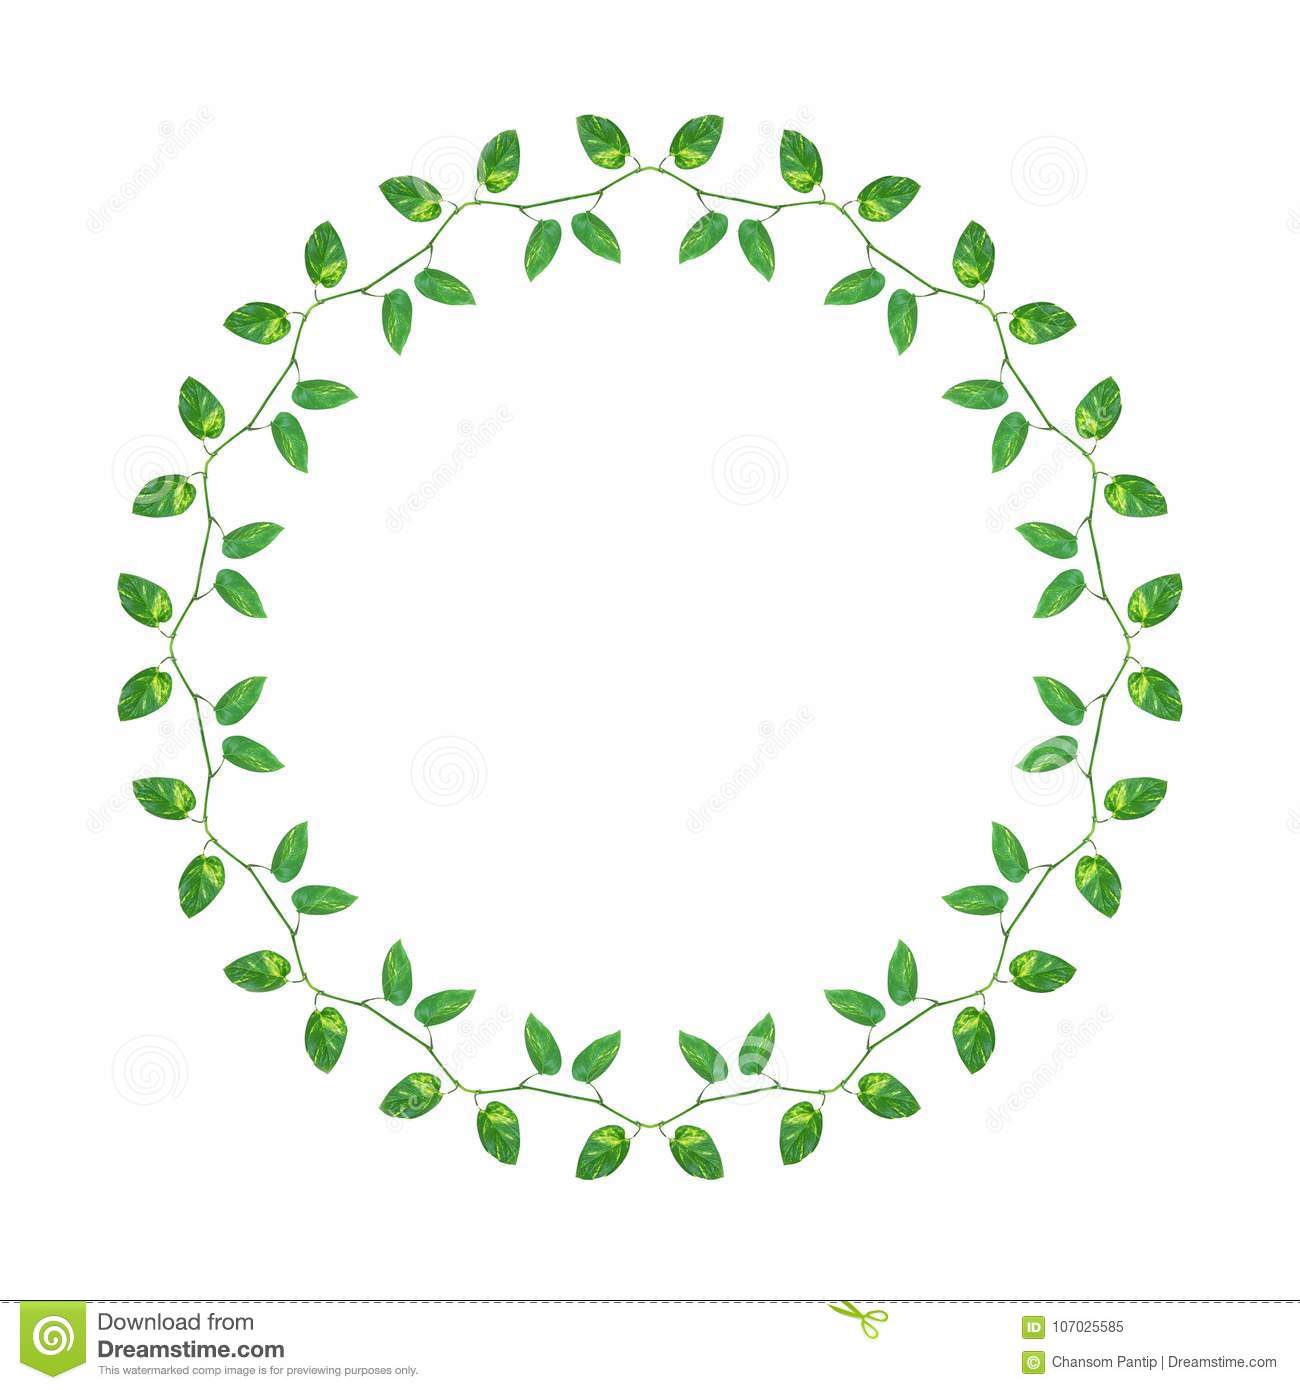 chain of green yellow leaves vines devil s ivy or golden pothos